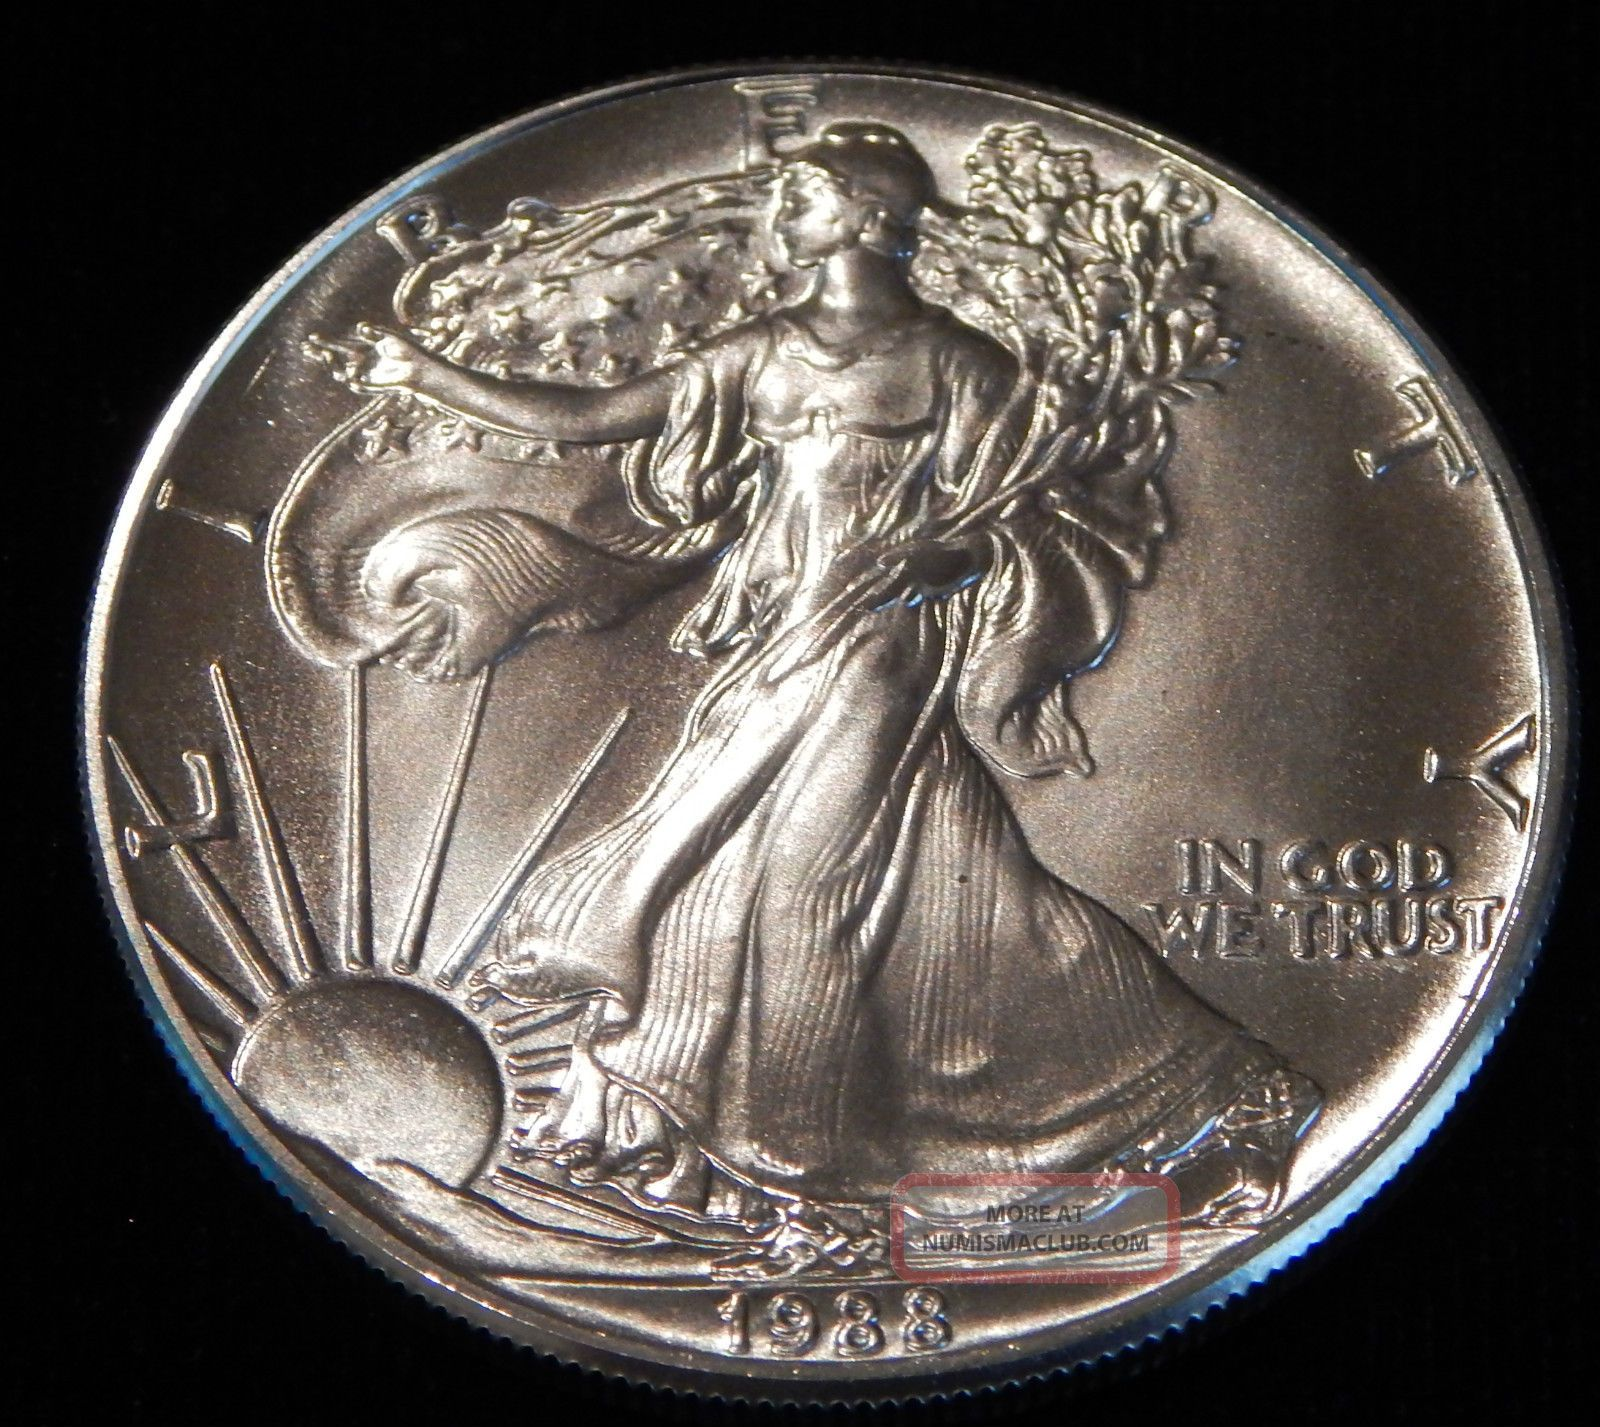 1988 American Silver Eagle Bullion Coin Rare Key Date